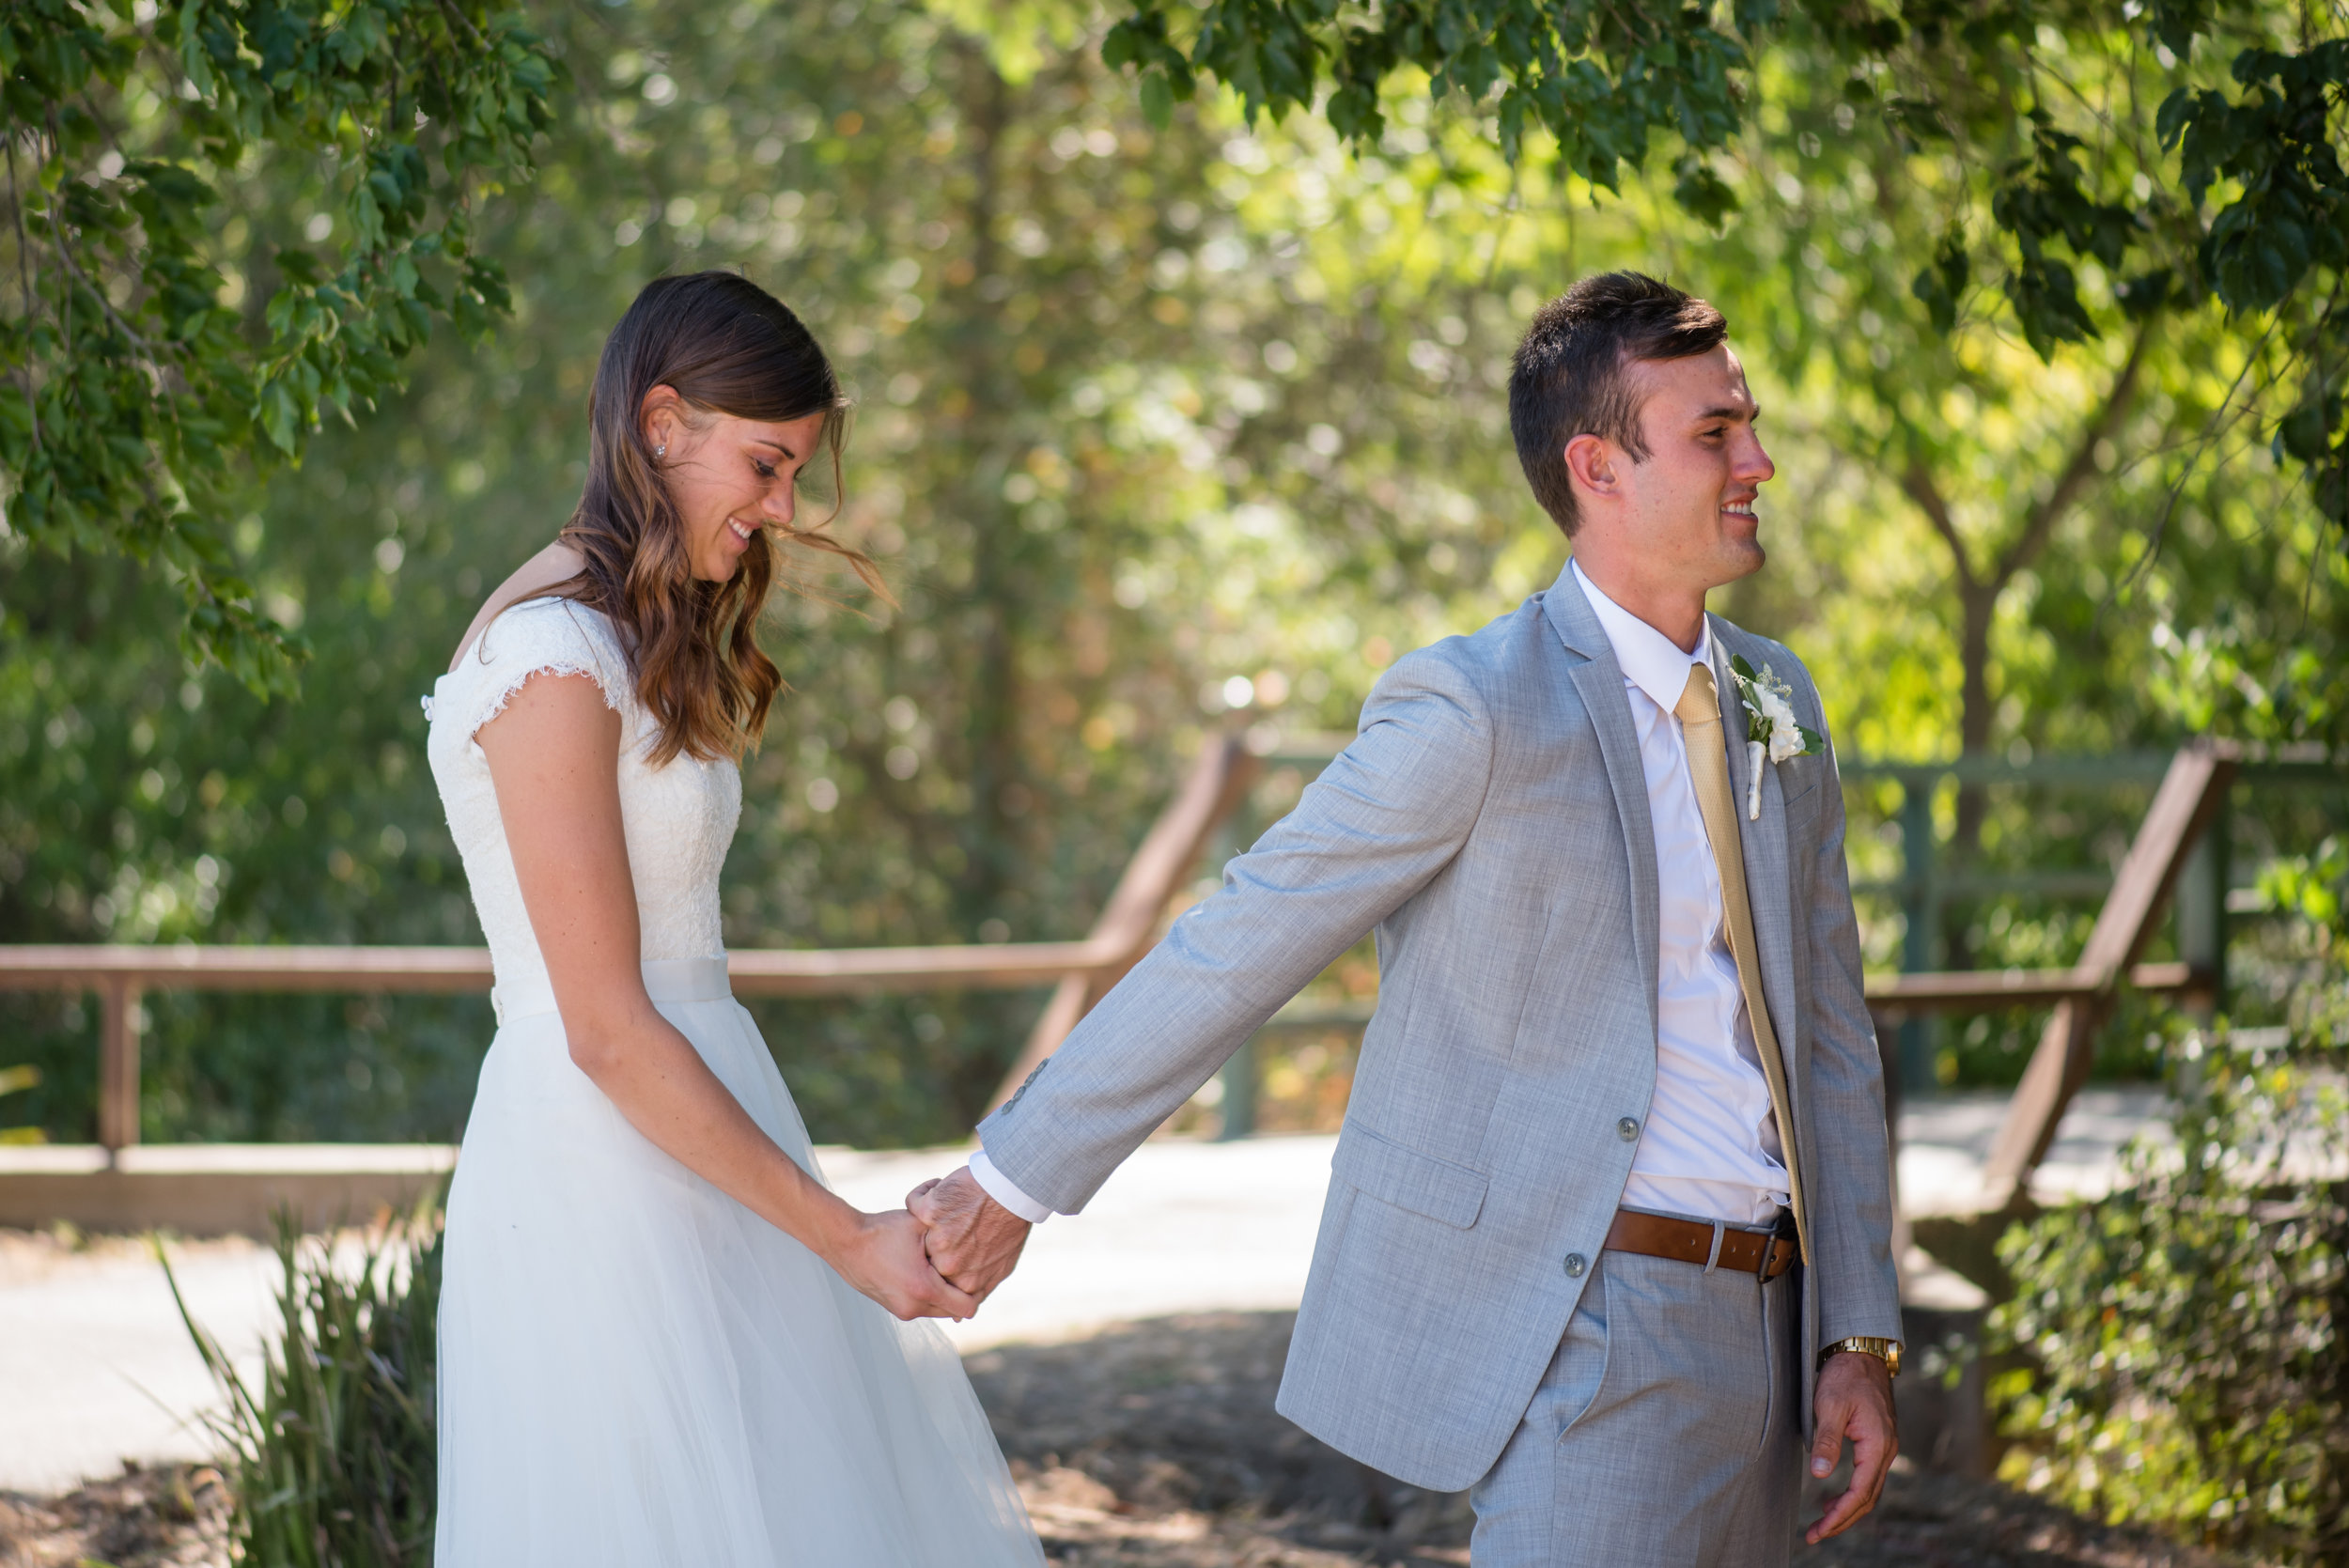 meghan-jonah-002-haggin-oaks-golf-course-sacramento-engagement-wedding-photographer-katherine-nicole-photography.JPG